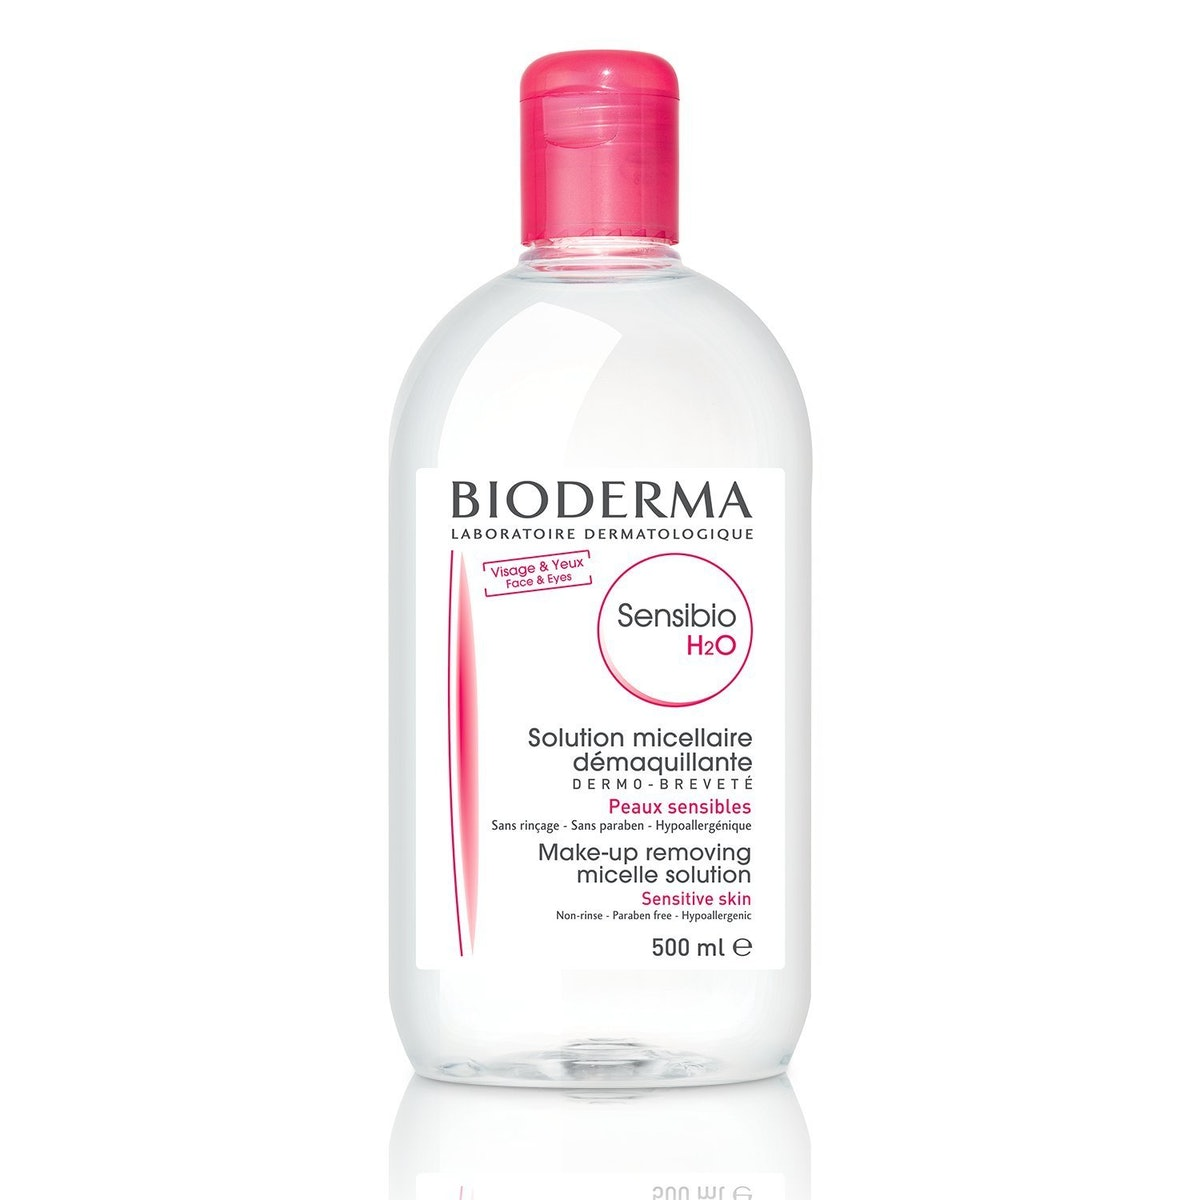 Bioderma Cleansing Solution